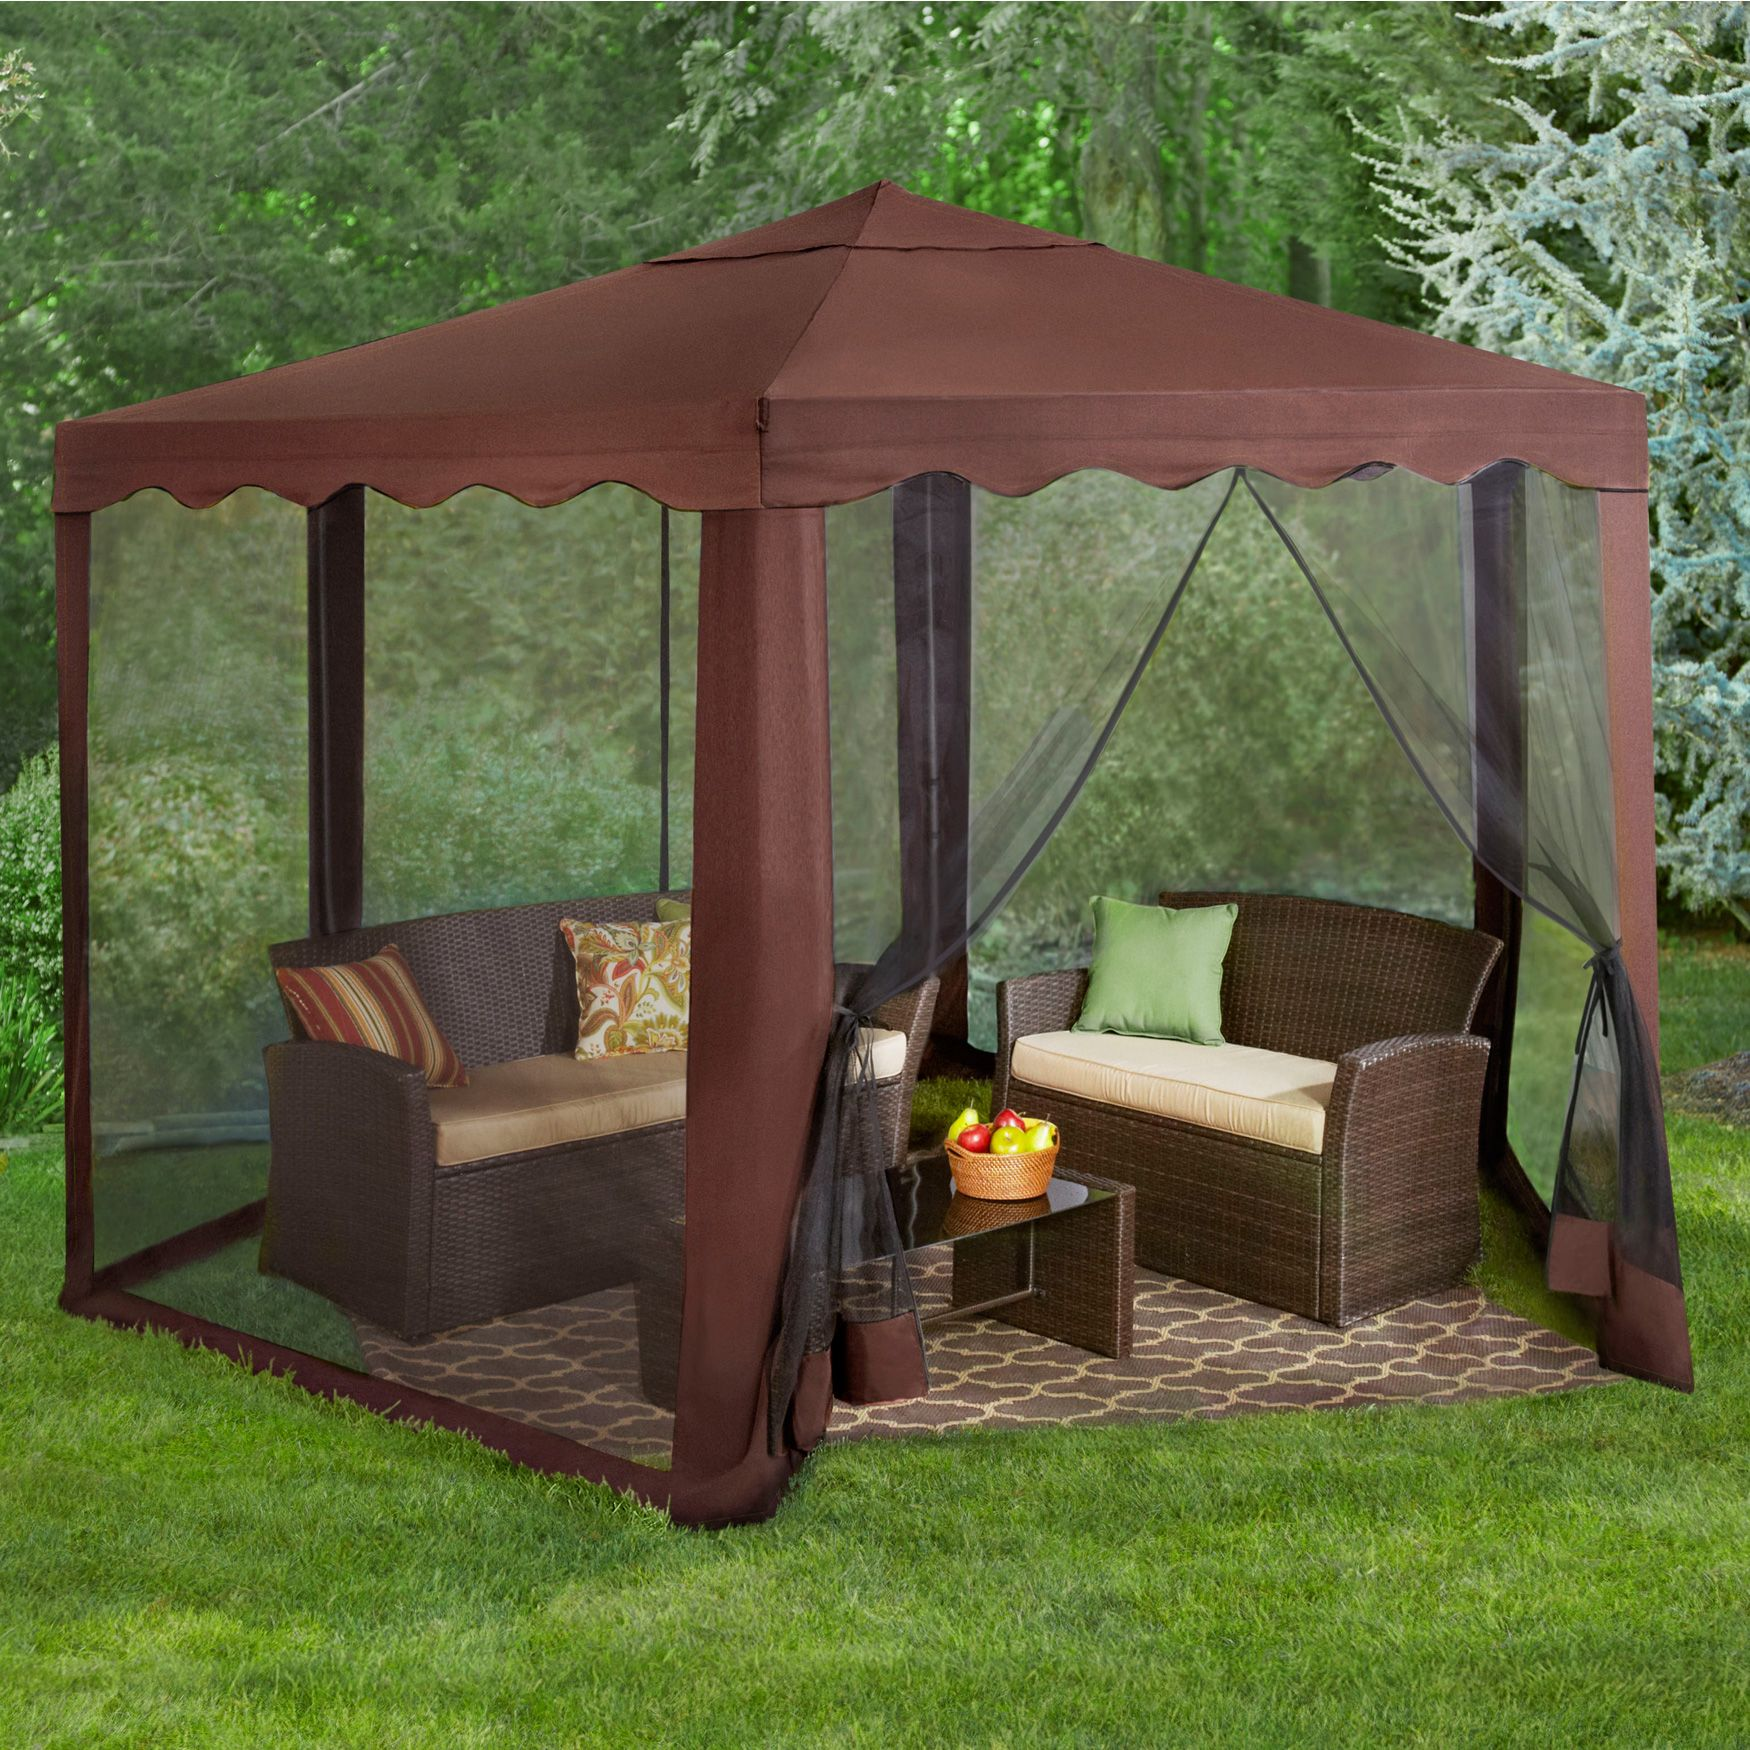 Related Image Backyard Gazebo Screened Gazebo Screen House